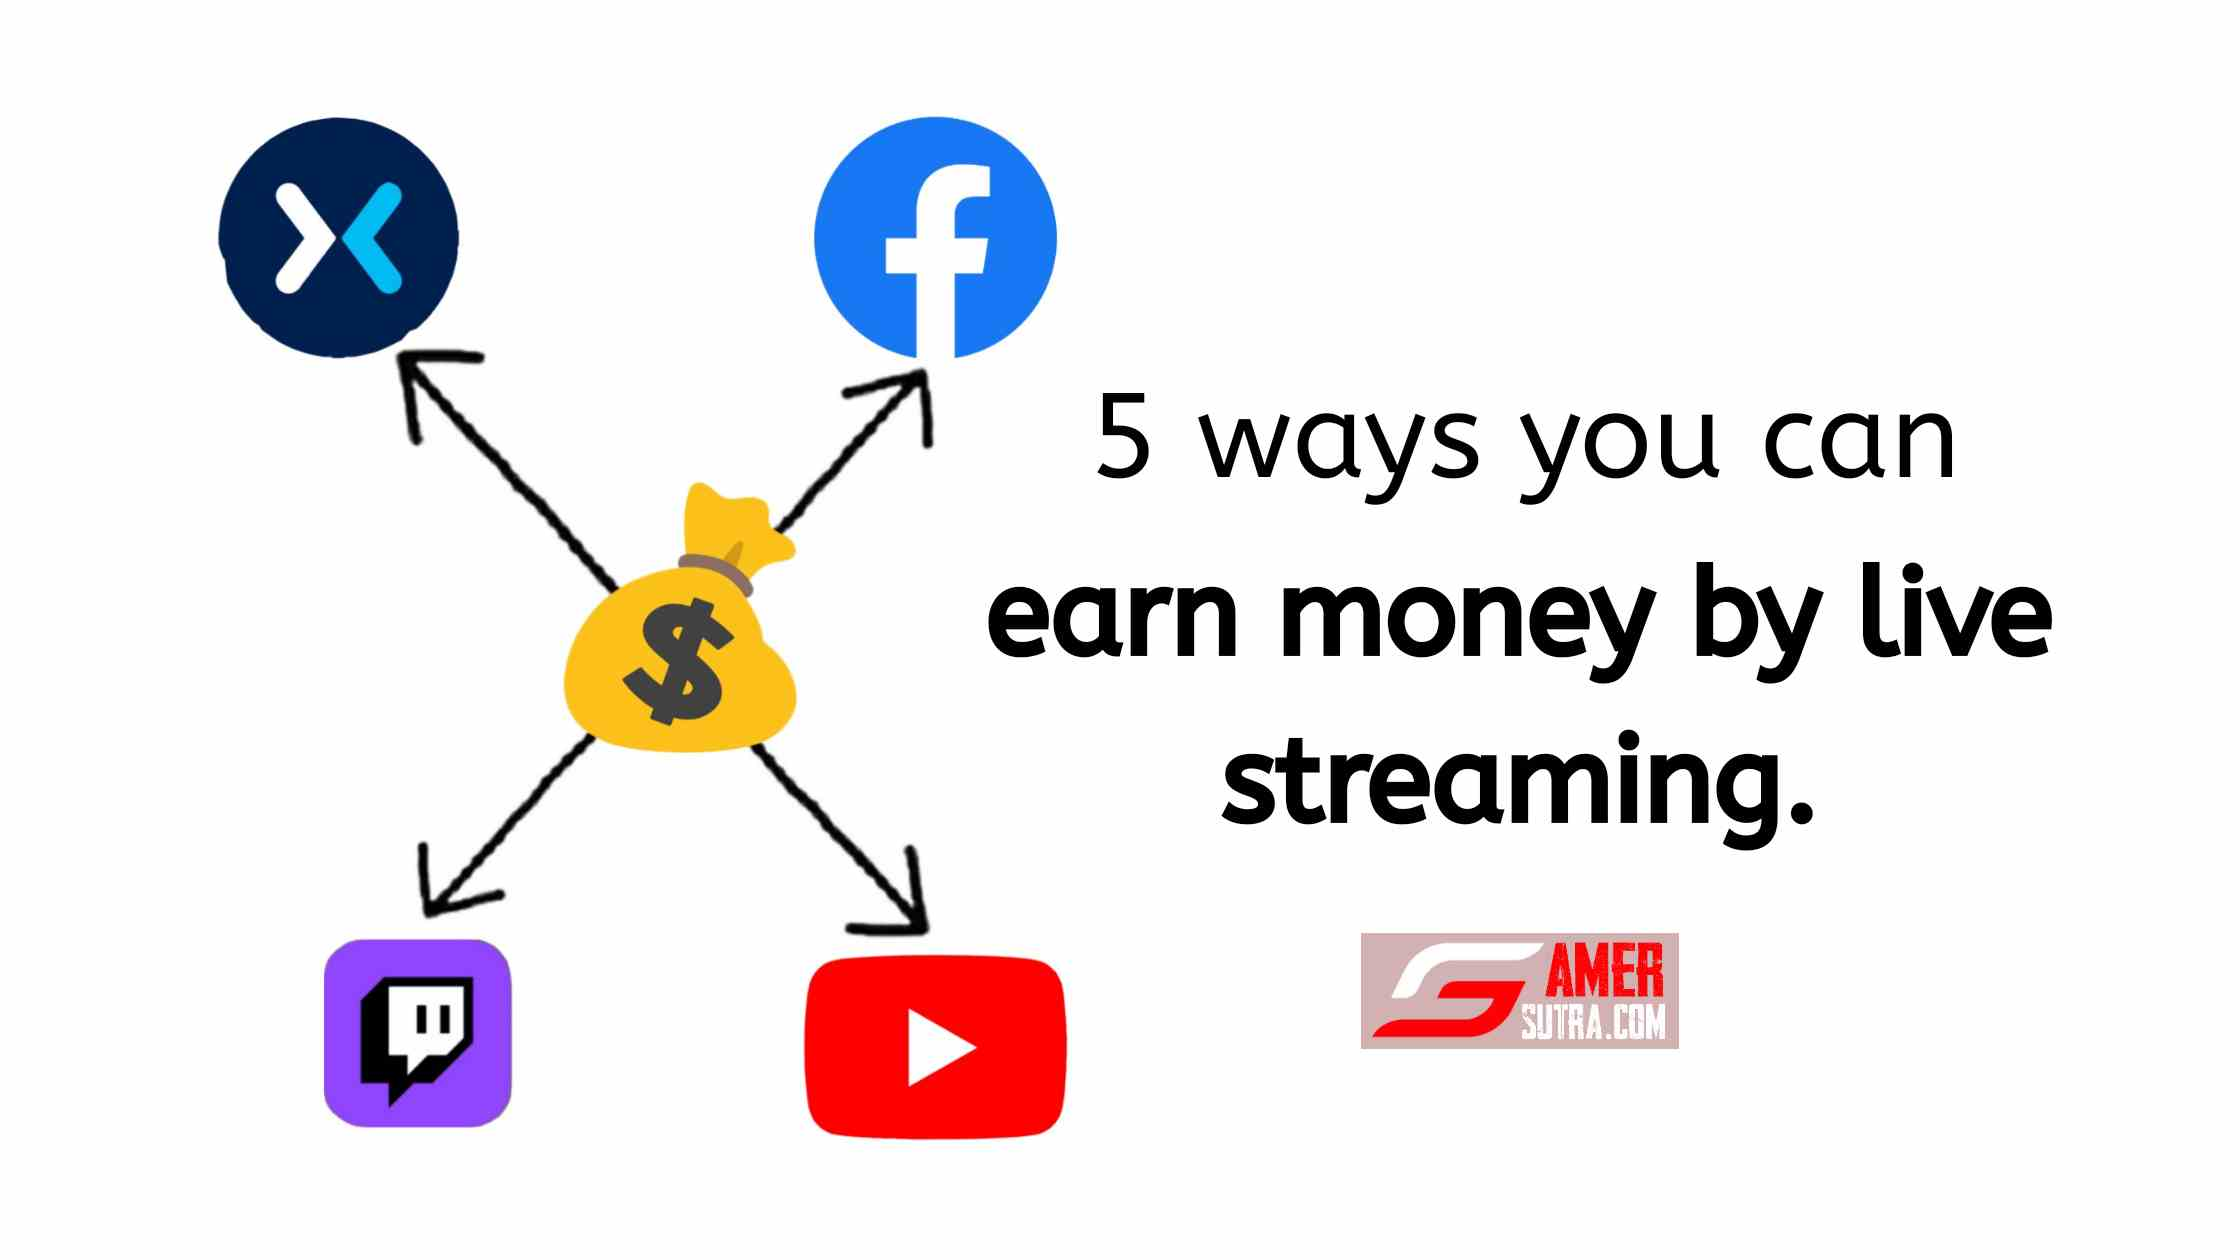 5 ways you can earn money by live streaming